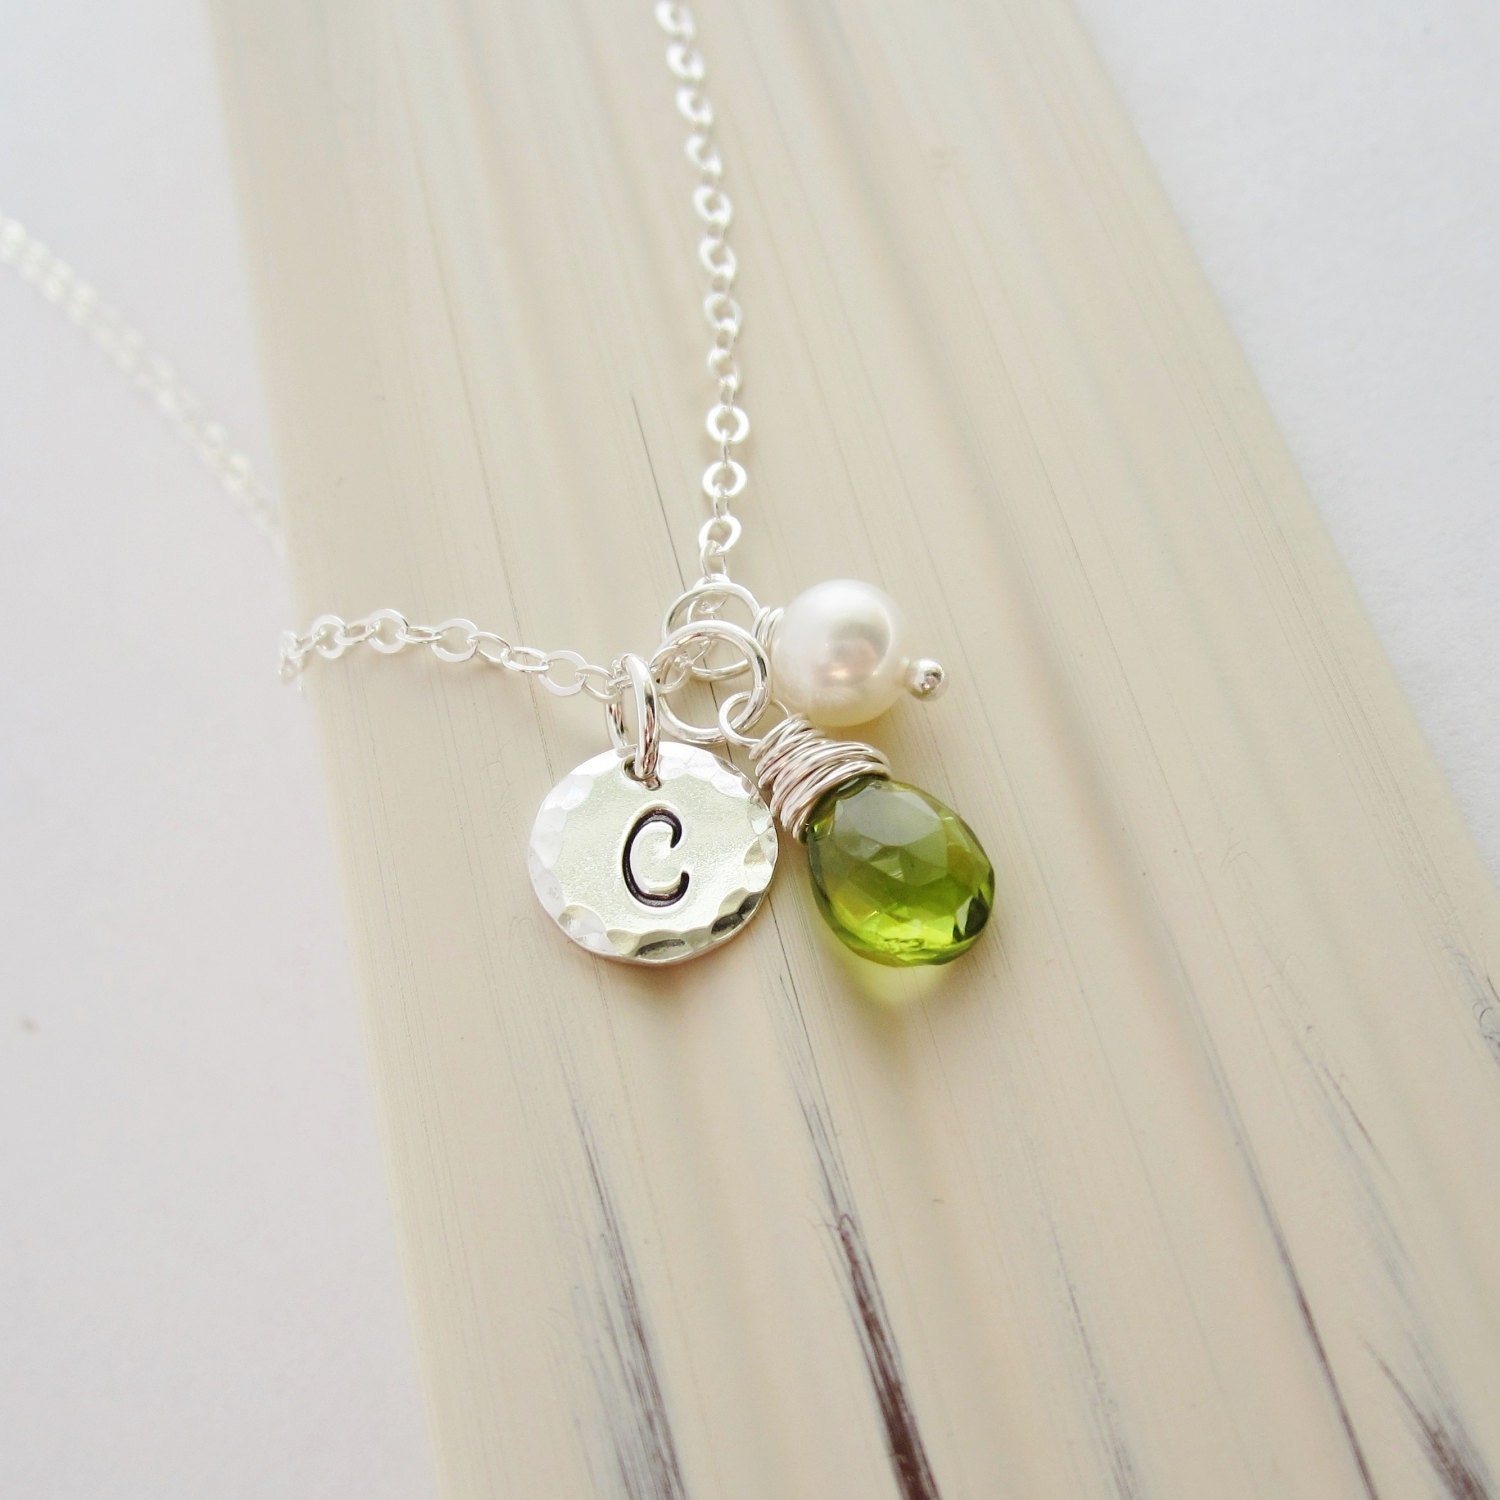 present valentines teenage swarovski buy necklace gifts sterling leo pendant stone products wife good birthday teen cool green silver day august jewelry presents nano girlfriend for girls gift now sign a birthstone